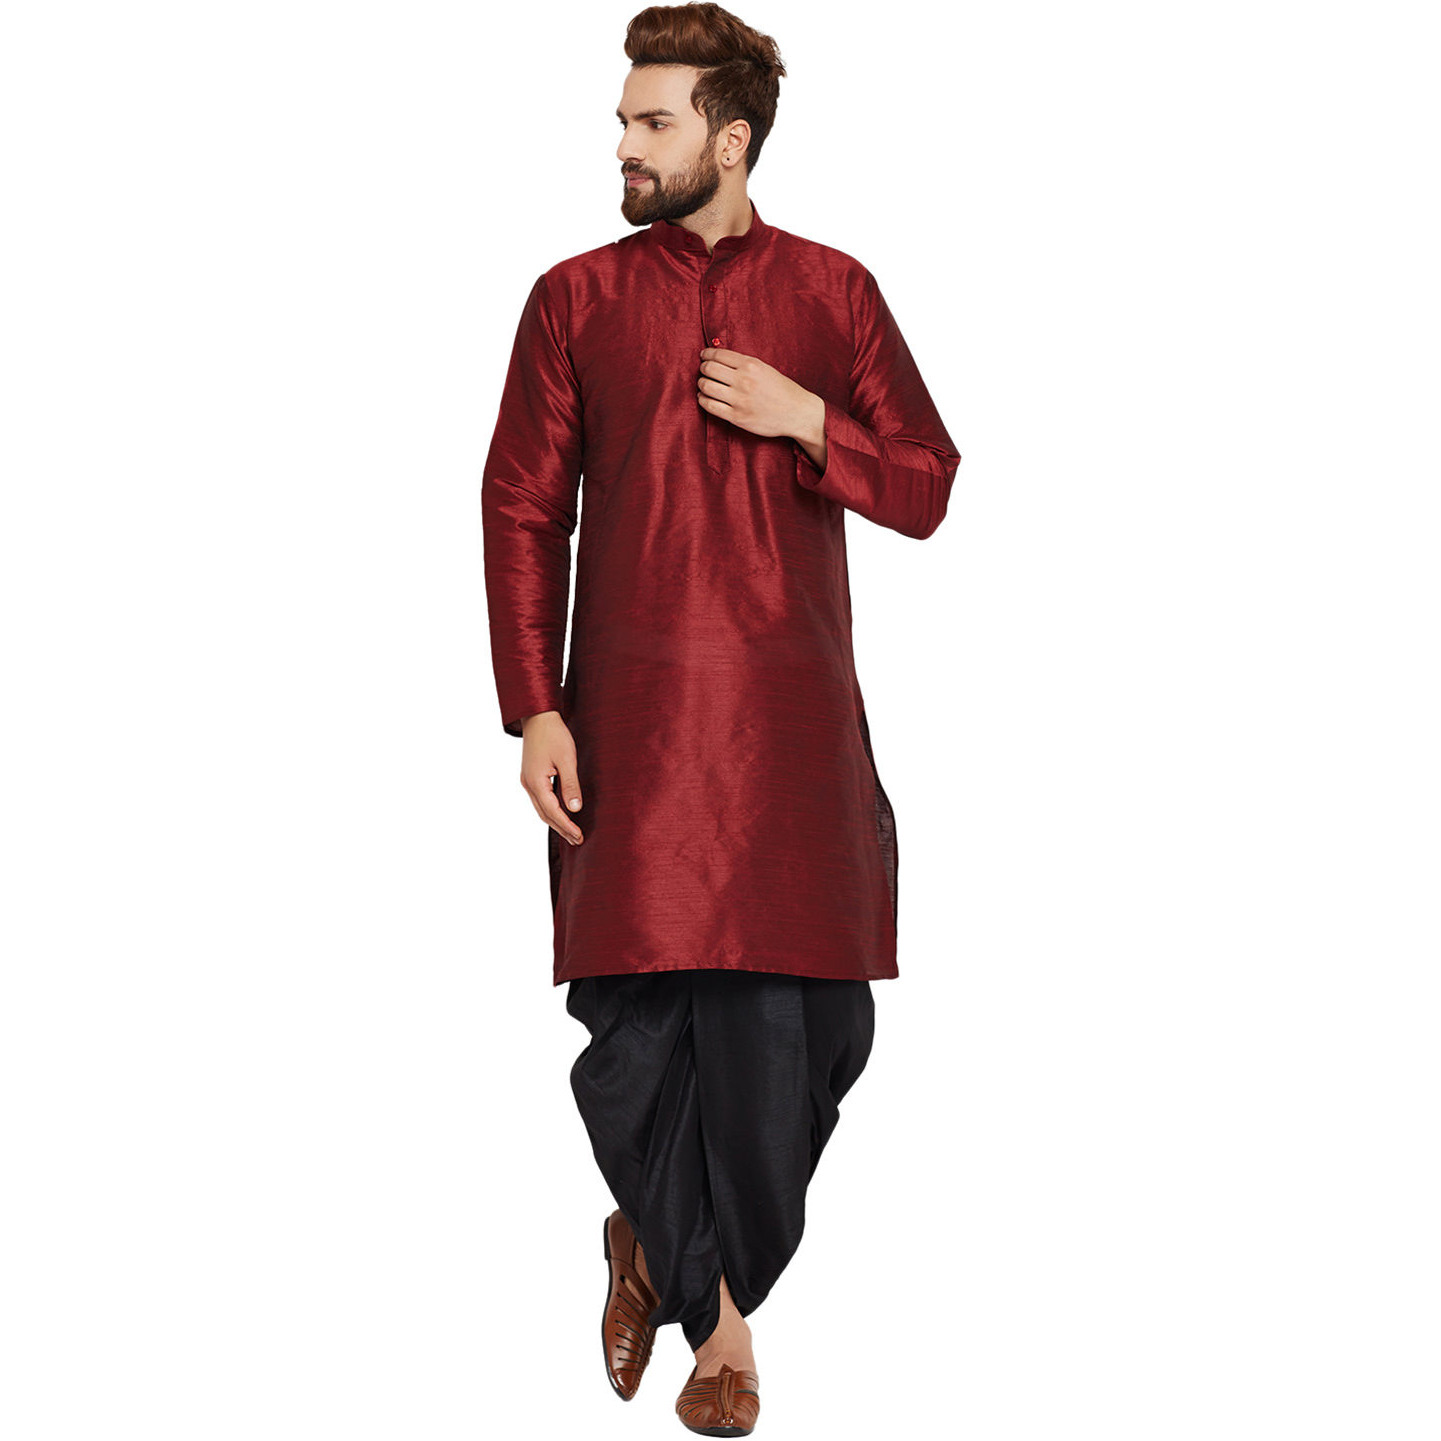 Sojanya (Since 1958)B Men's Traditional Ethnic Wear Dupion Silk Maroon Plain DhotiKurta Set Regular Fit